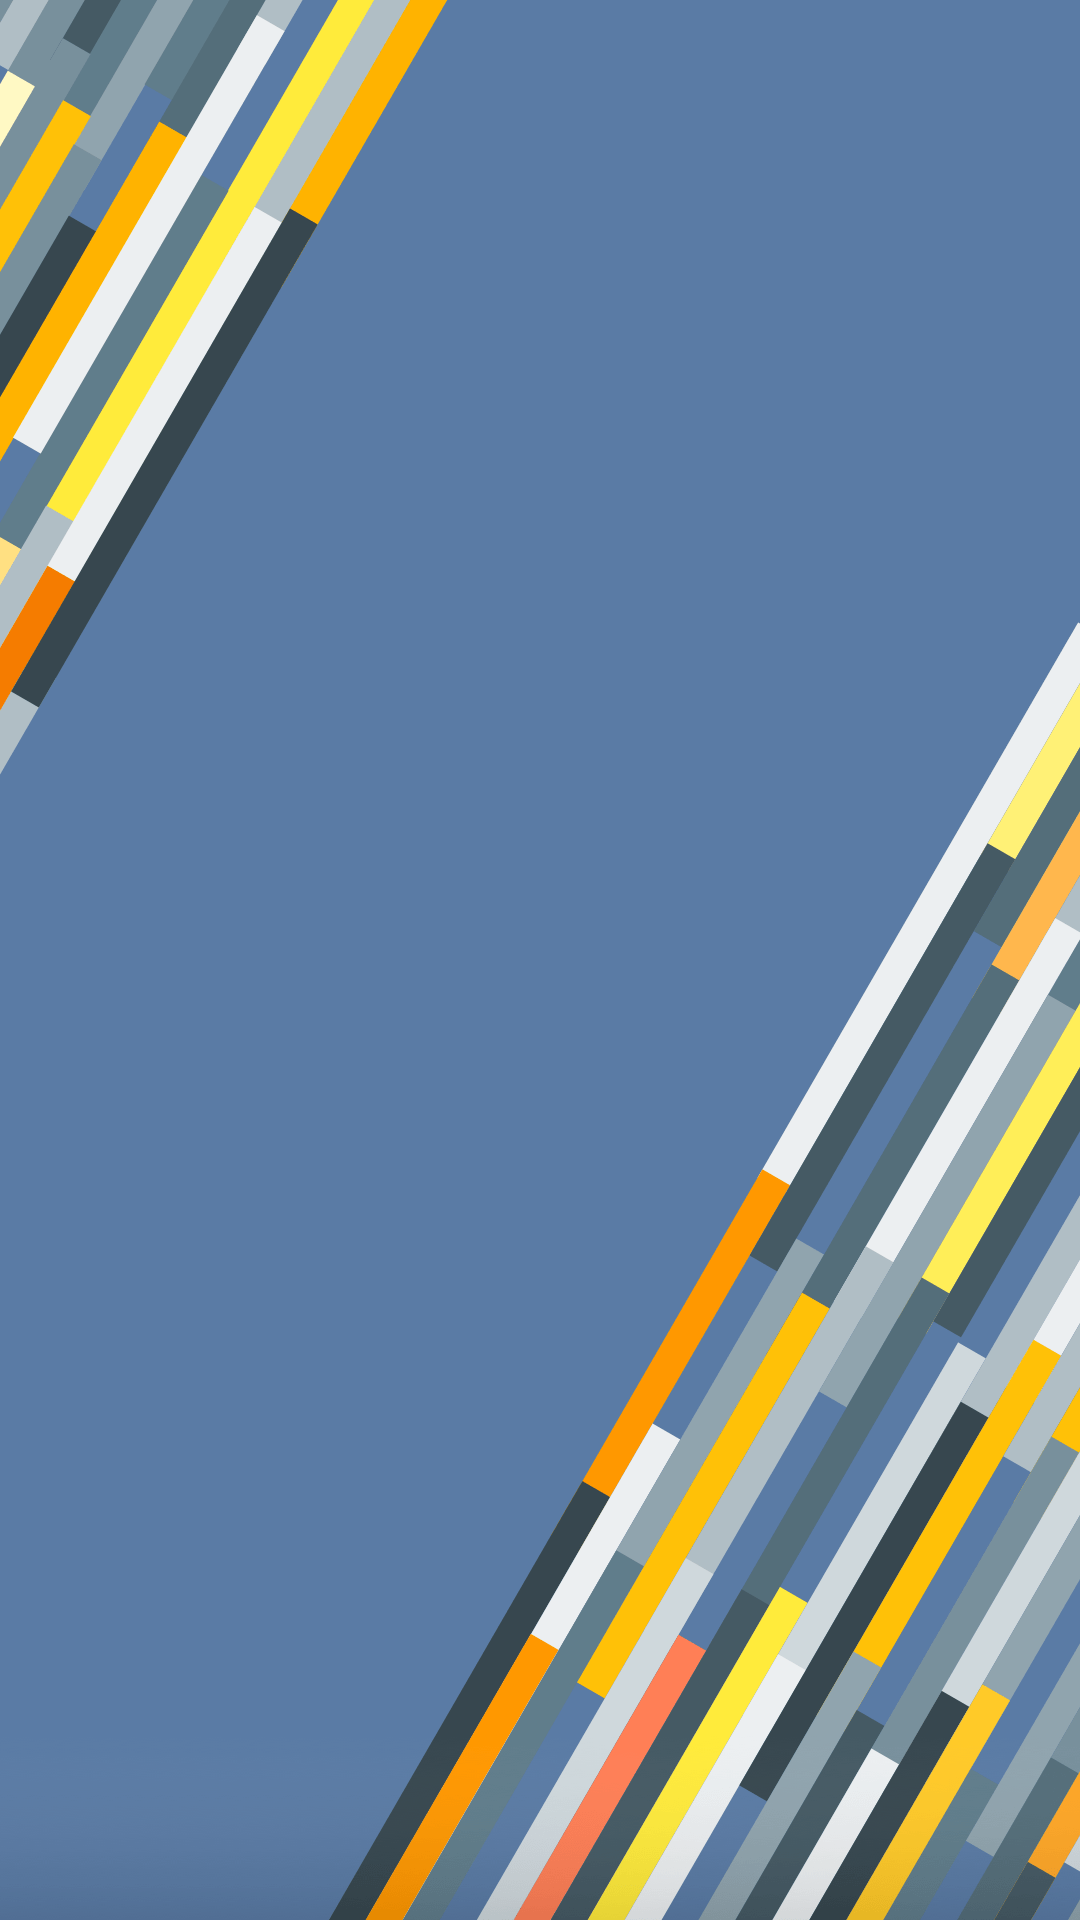 axis-OnePlus-2-Wallpapers